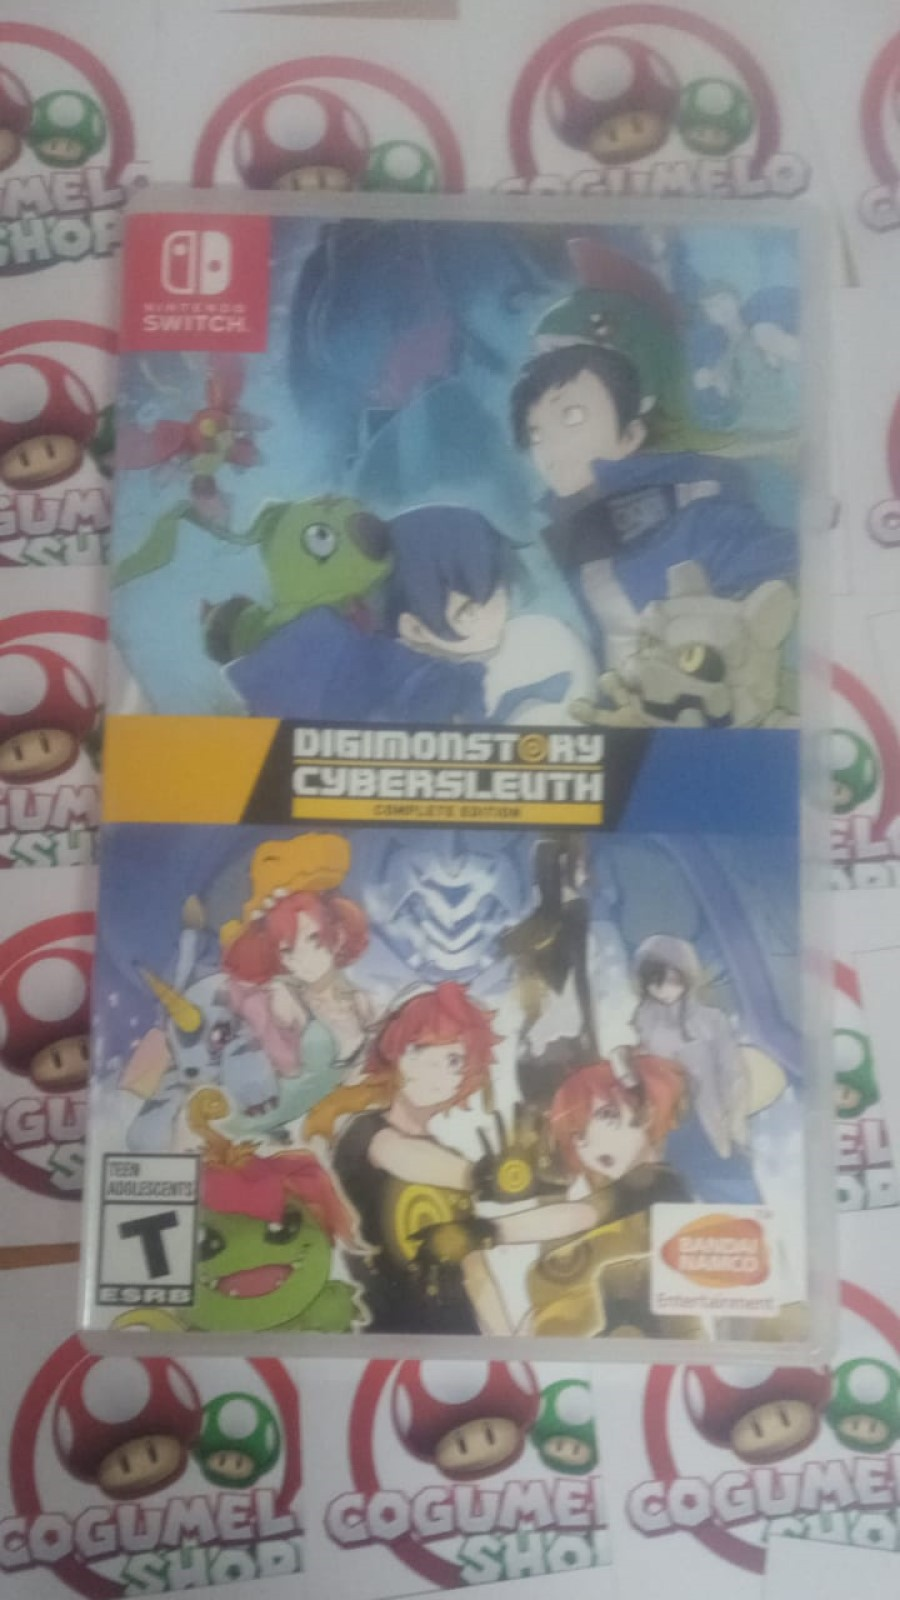 Digimon Story Cyber Sleuth: Complete Edition - USADO - Nintendo Switch